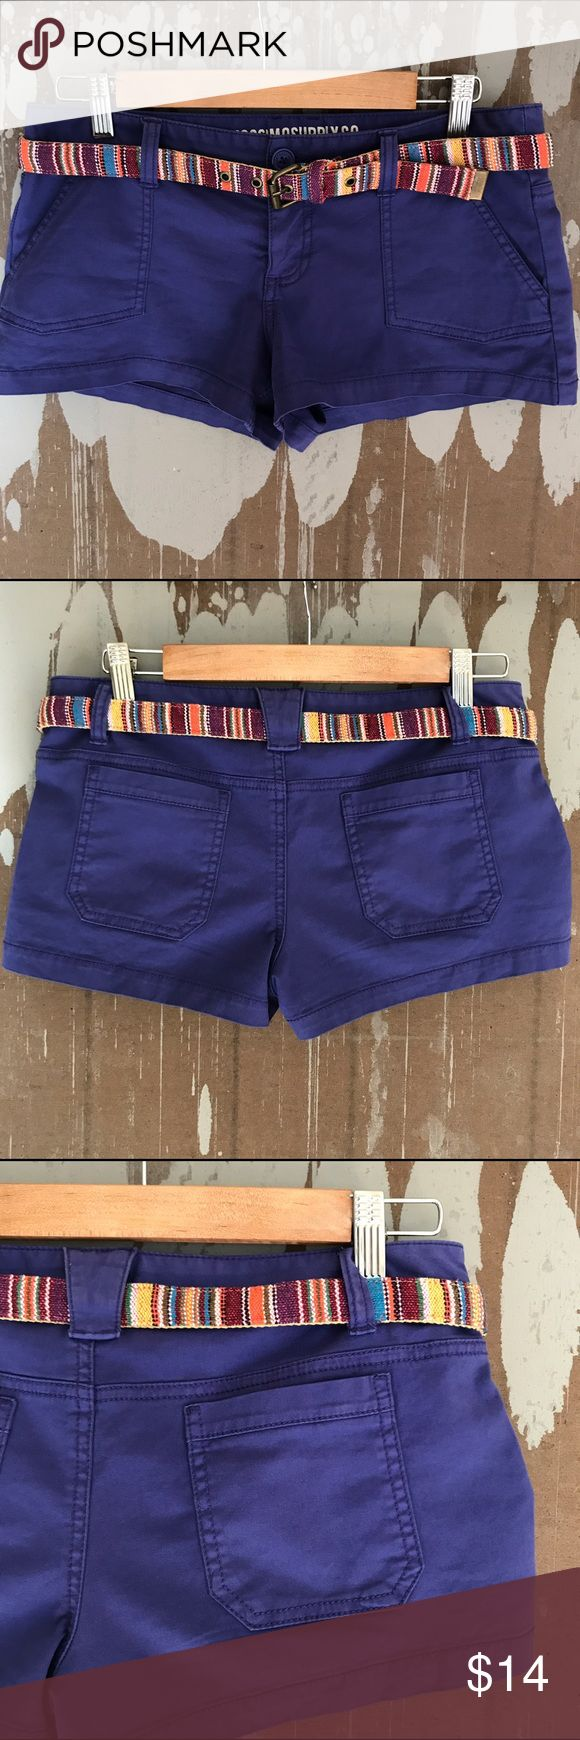 "Mossimo Cobalt Blue Shorts Belted Pockets Size 7 Mossimo Supply Co. belted shorts. SIZE 7 . (Target Fit Style: 6) Juniors. Cobalt Blue, darling. Waist: 15"" Inseam: 2.75"" Rise: 8"" Excellent condition, no signs of wear. Inventory: K19 Mossimo Supply Co Shorts Cargos"